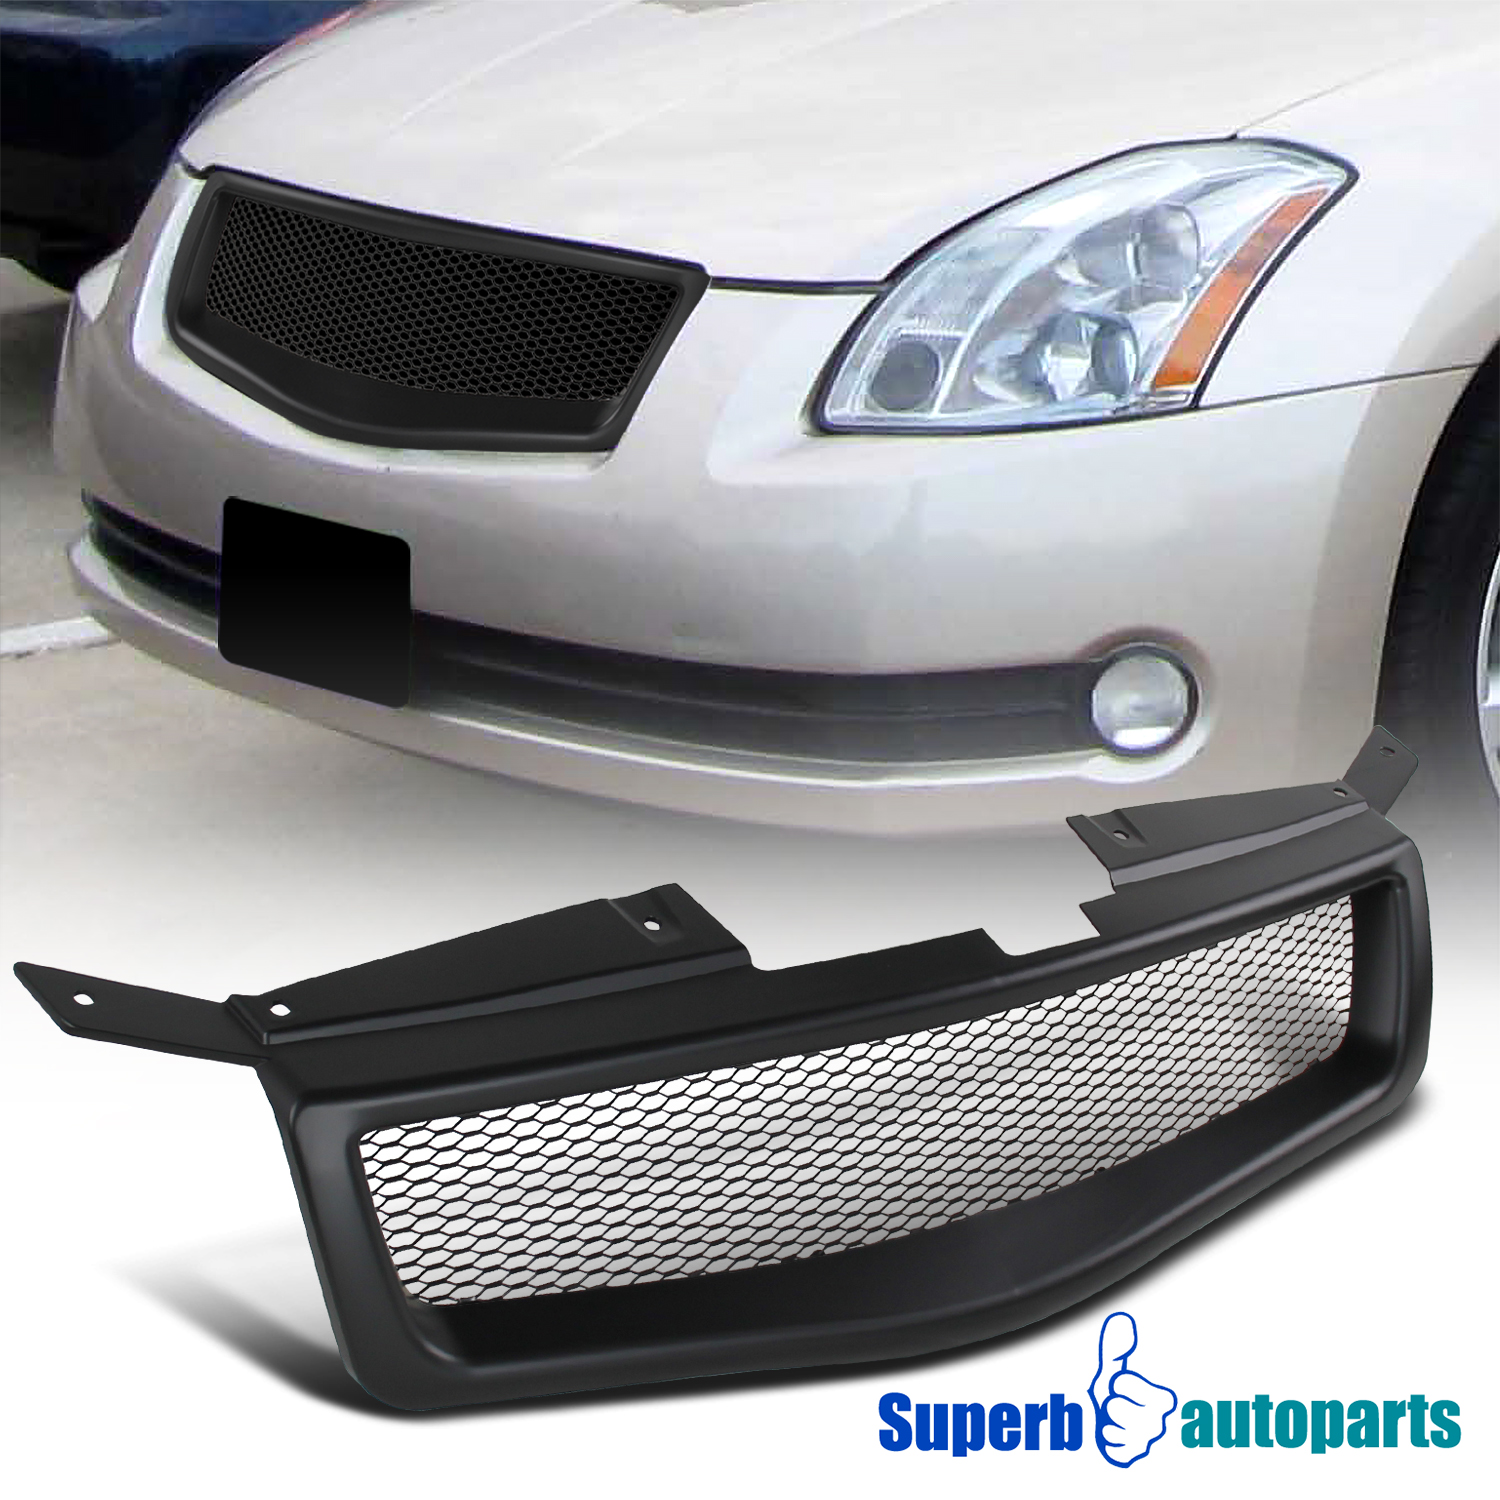 Details about For 2004-2006 Nissan Maxima Black ABS Mesh Style Front Hood  Grille Grill